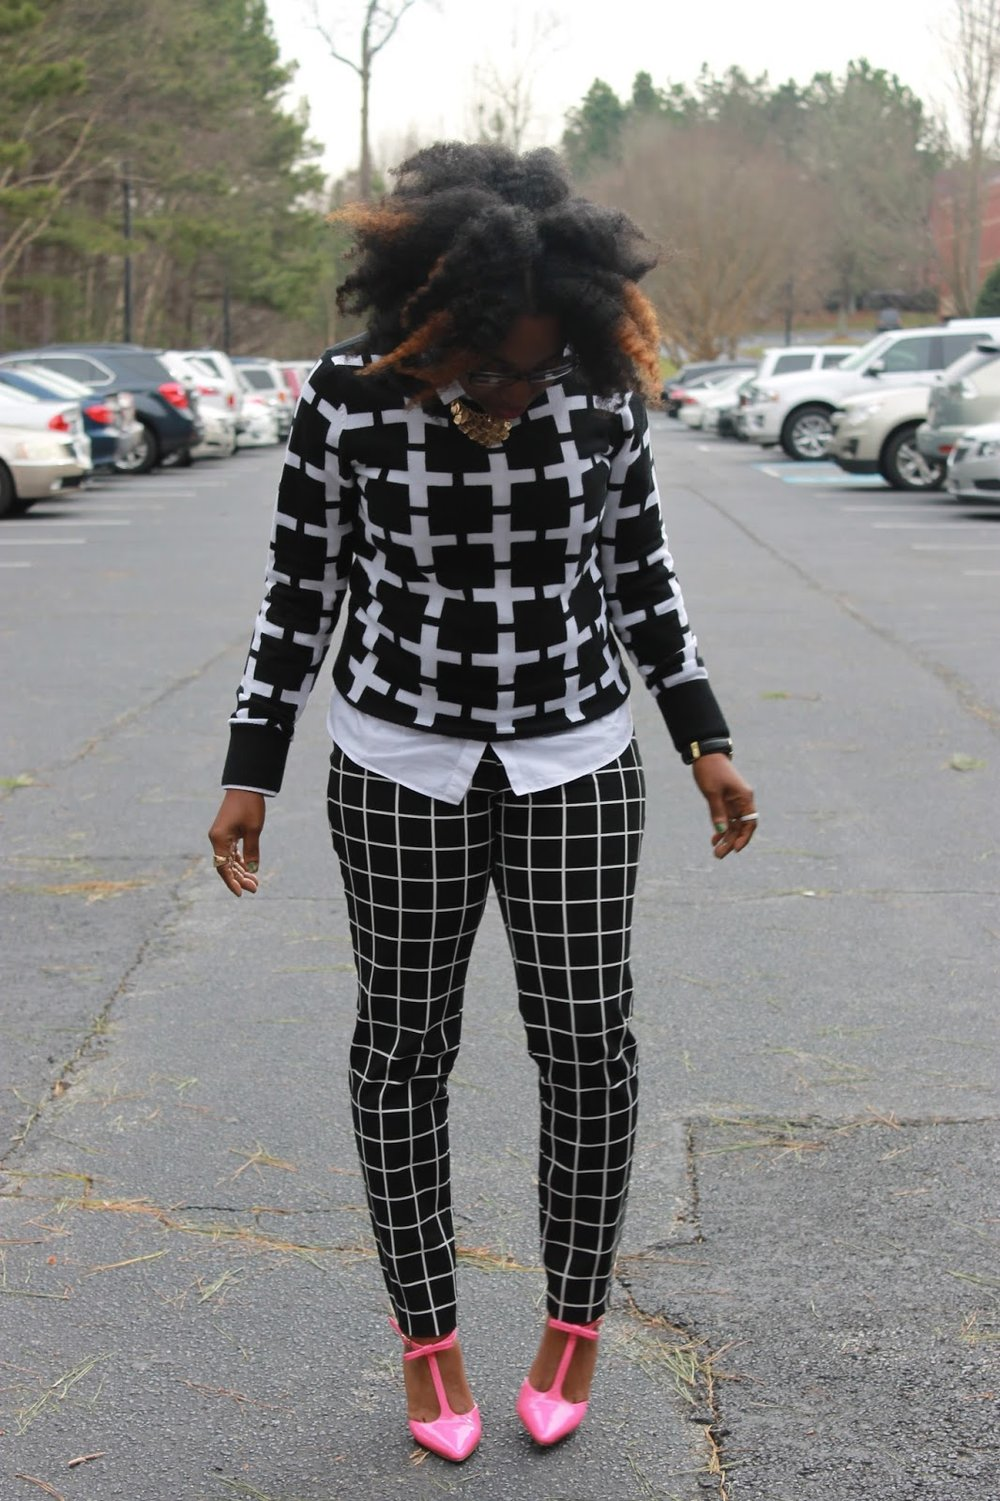 Atlanta style blogger, style blogger, Atlanta blogger, street style, black blogger, black and white, windowpane print, checkered print, mixed prints, pink shoes, ShoeDazzle,, Target Style, Old Navy, Naturals Rock, Work wear, Stylist